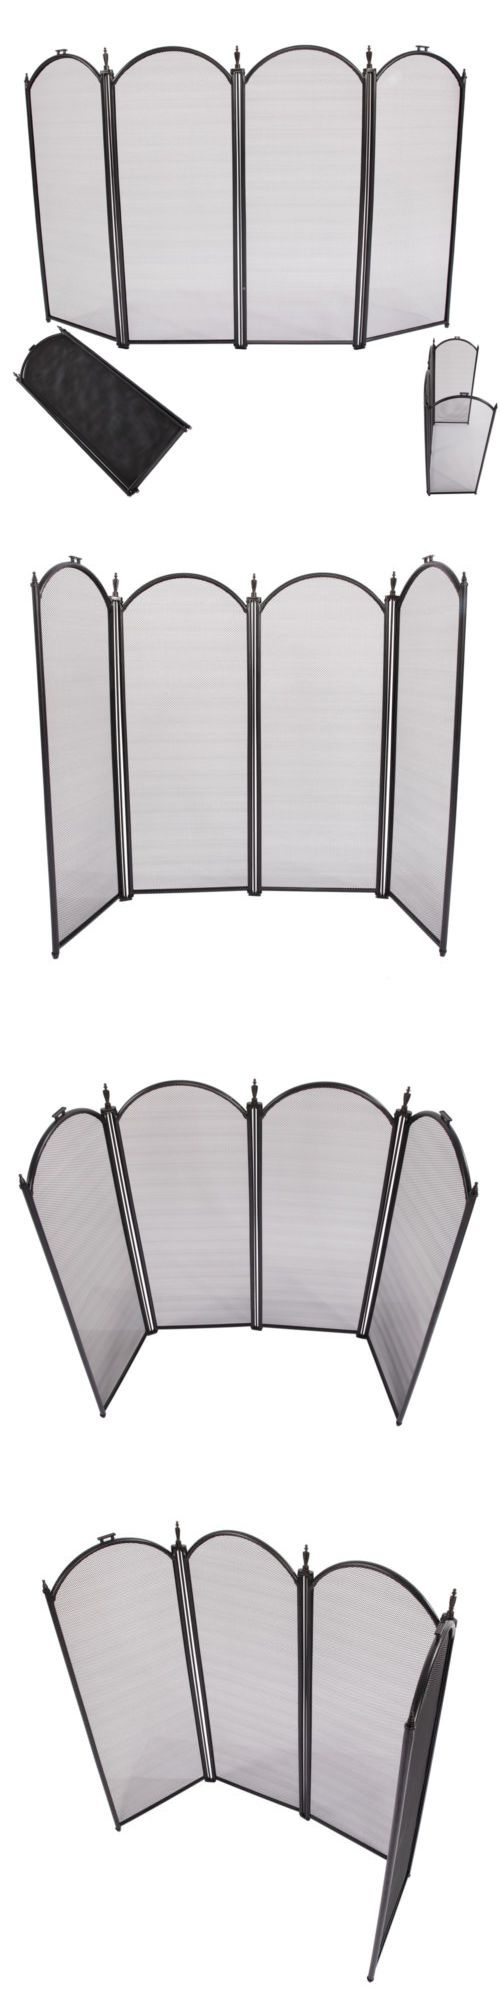 Fireplace Screens and Doors 38221: 4 Panel Folding Outdoor Fireplace Screen Wrought Iron Black Metal Fire Place Hot -> BUY IT NOW ONLY: $38.9 on eBay!